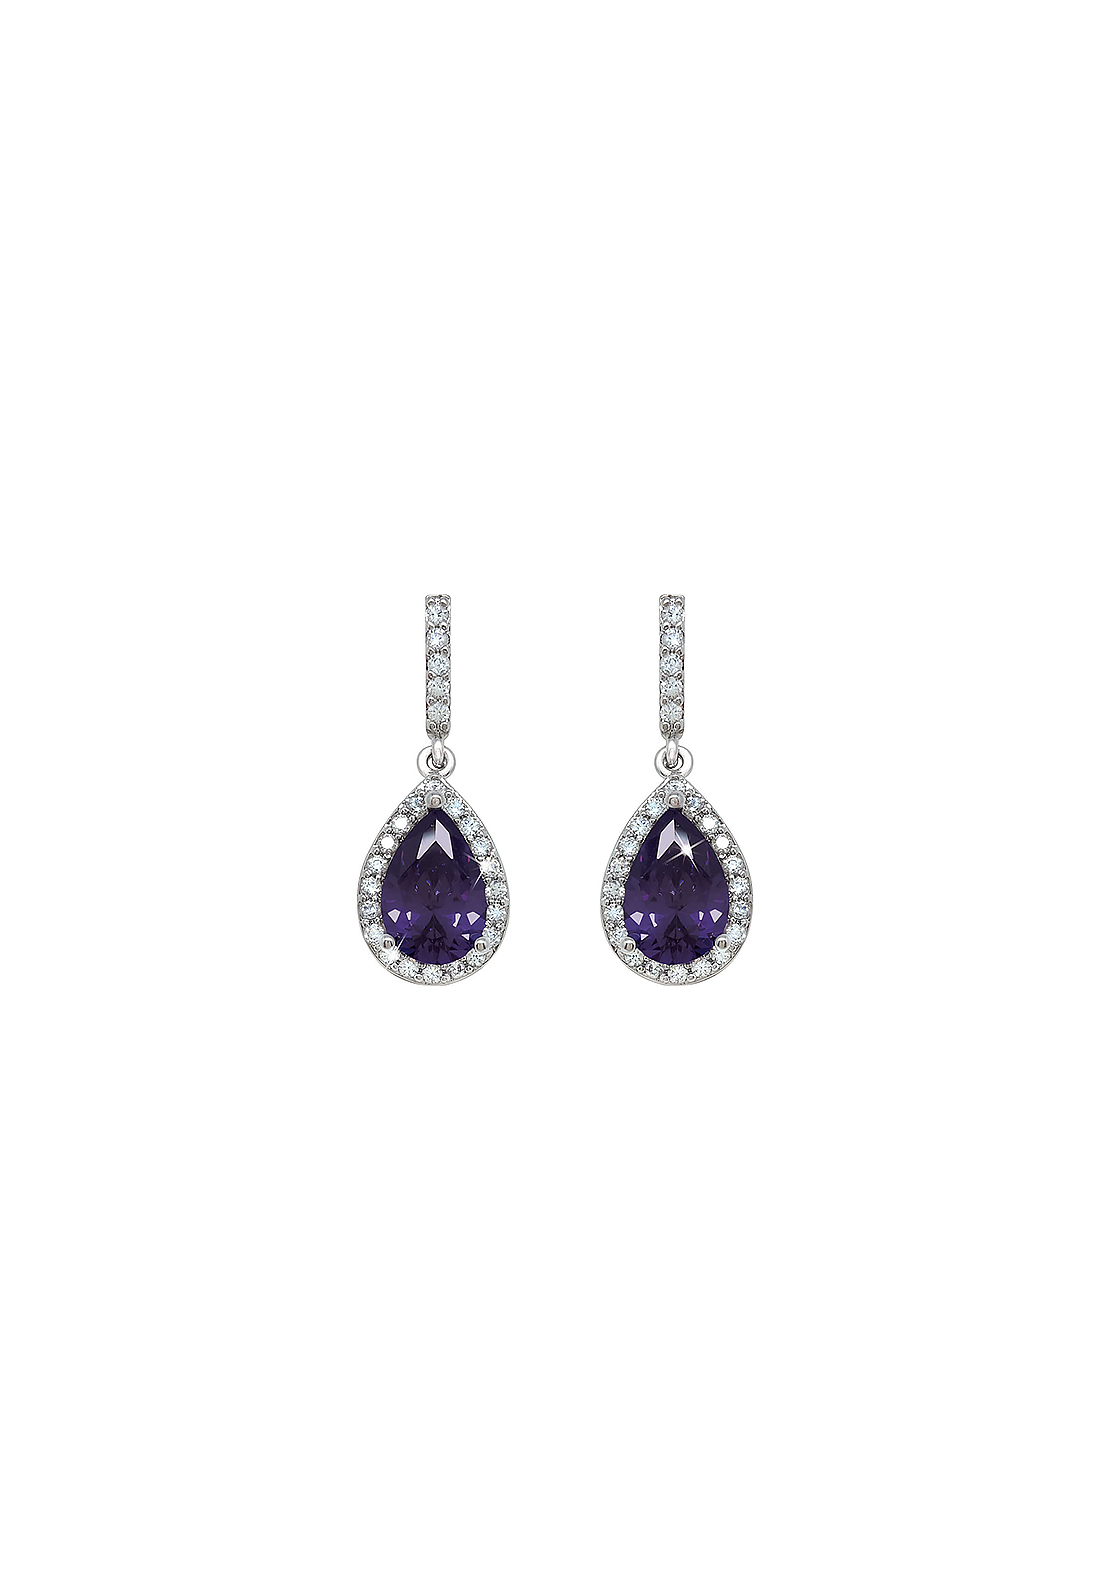 Tipperary Crystal Faux Amythest Pear Shaped Earrings, Silver and Purple